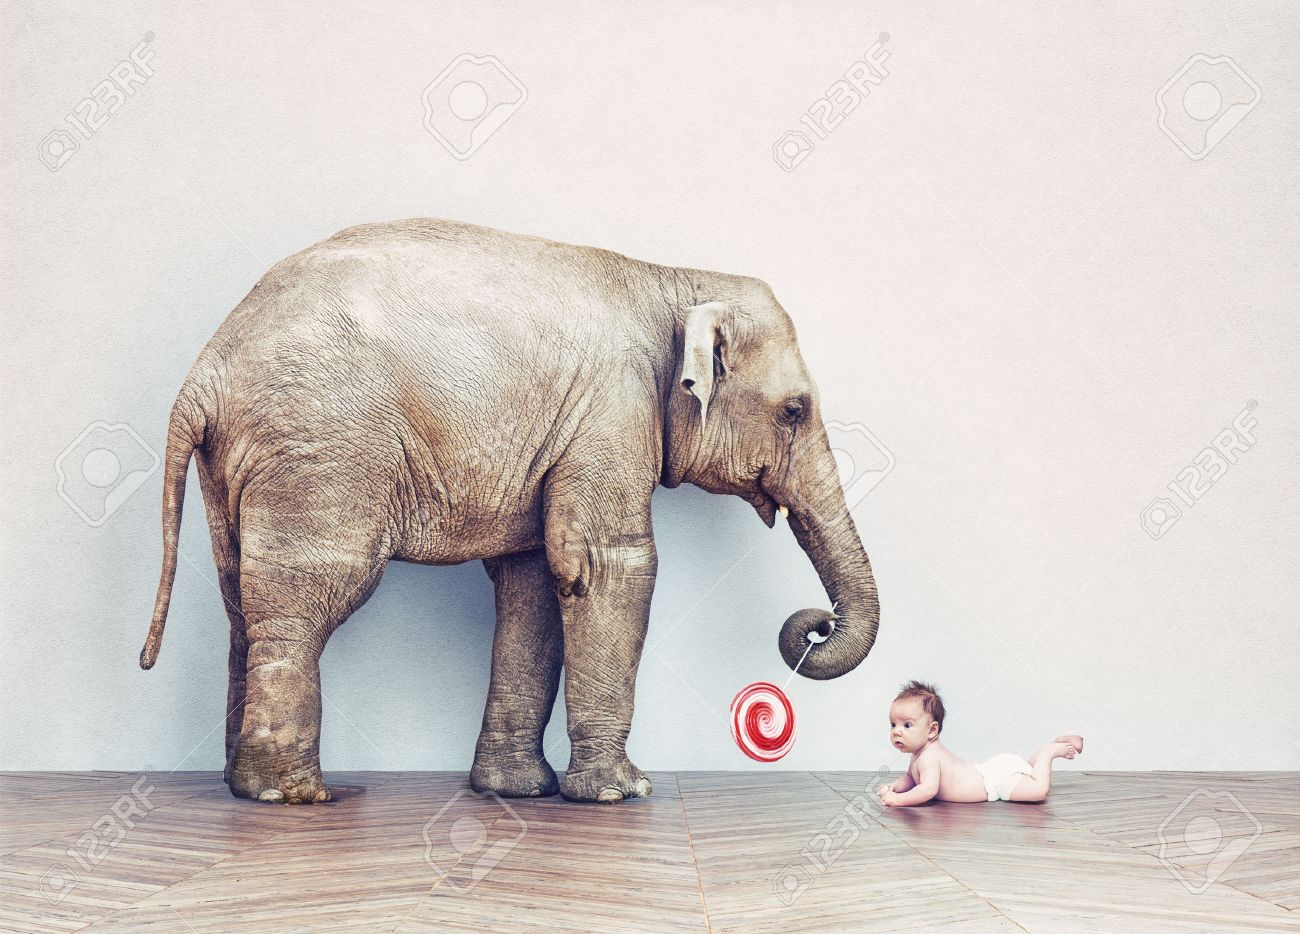 baby elephant and human baby in an empty room. Photo combination concept Standard-Bild - 47971996